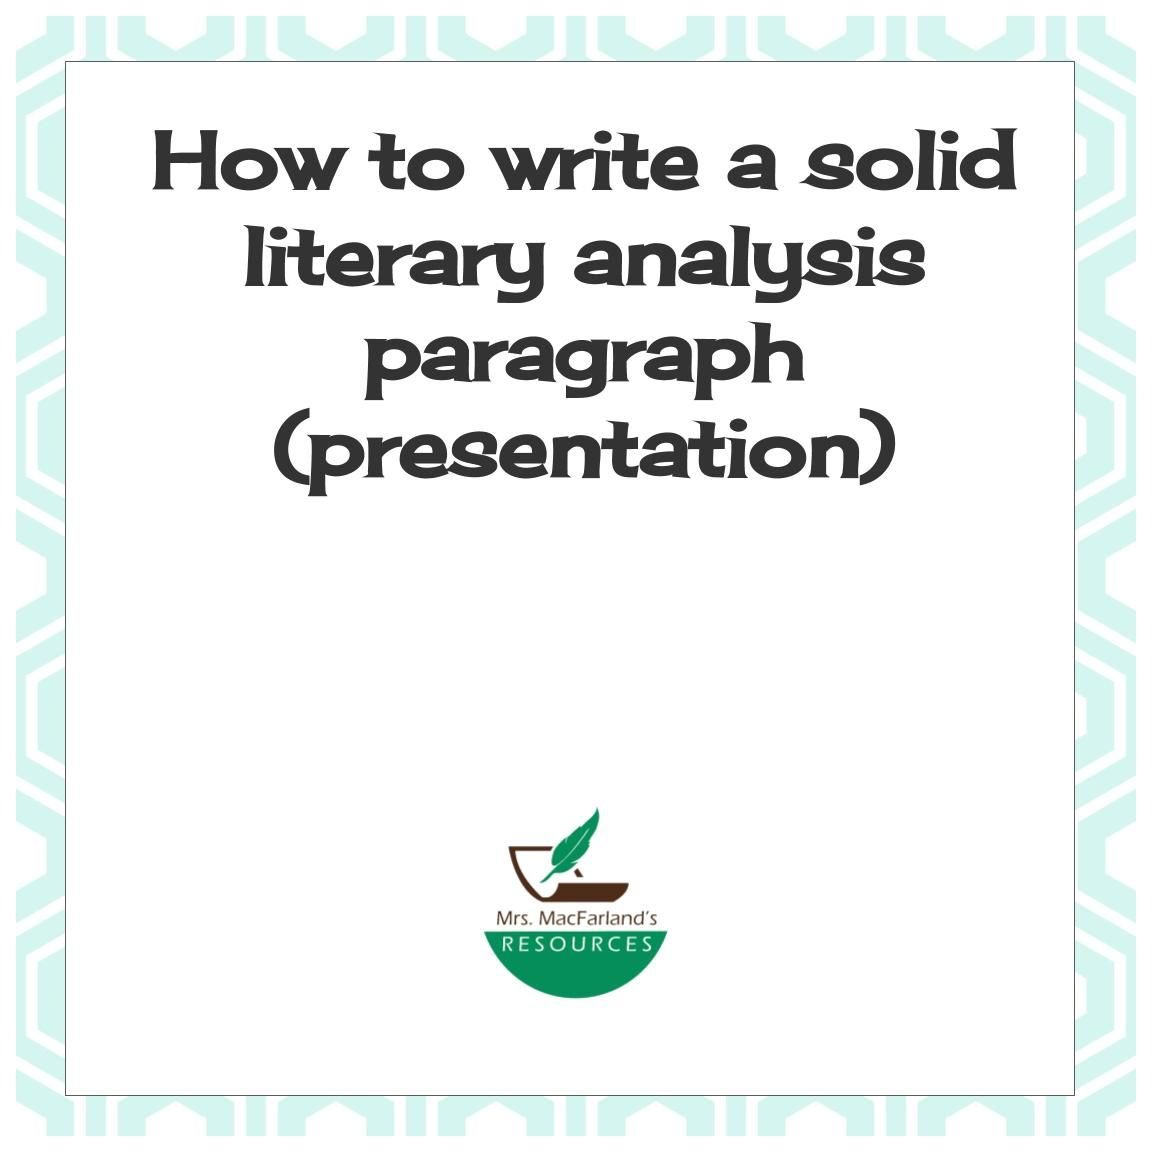 How to write a solid literary analysis paragraph